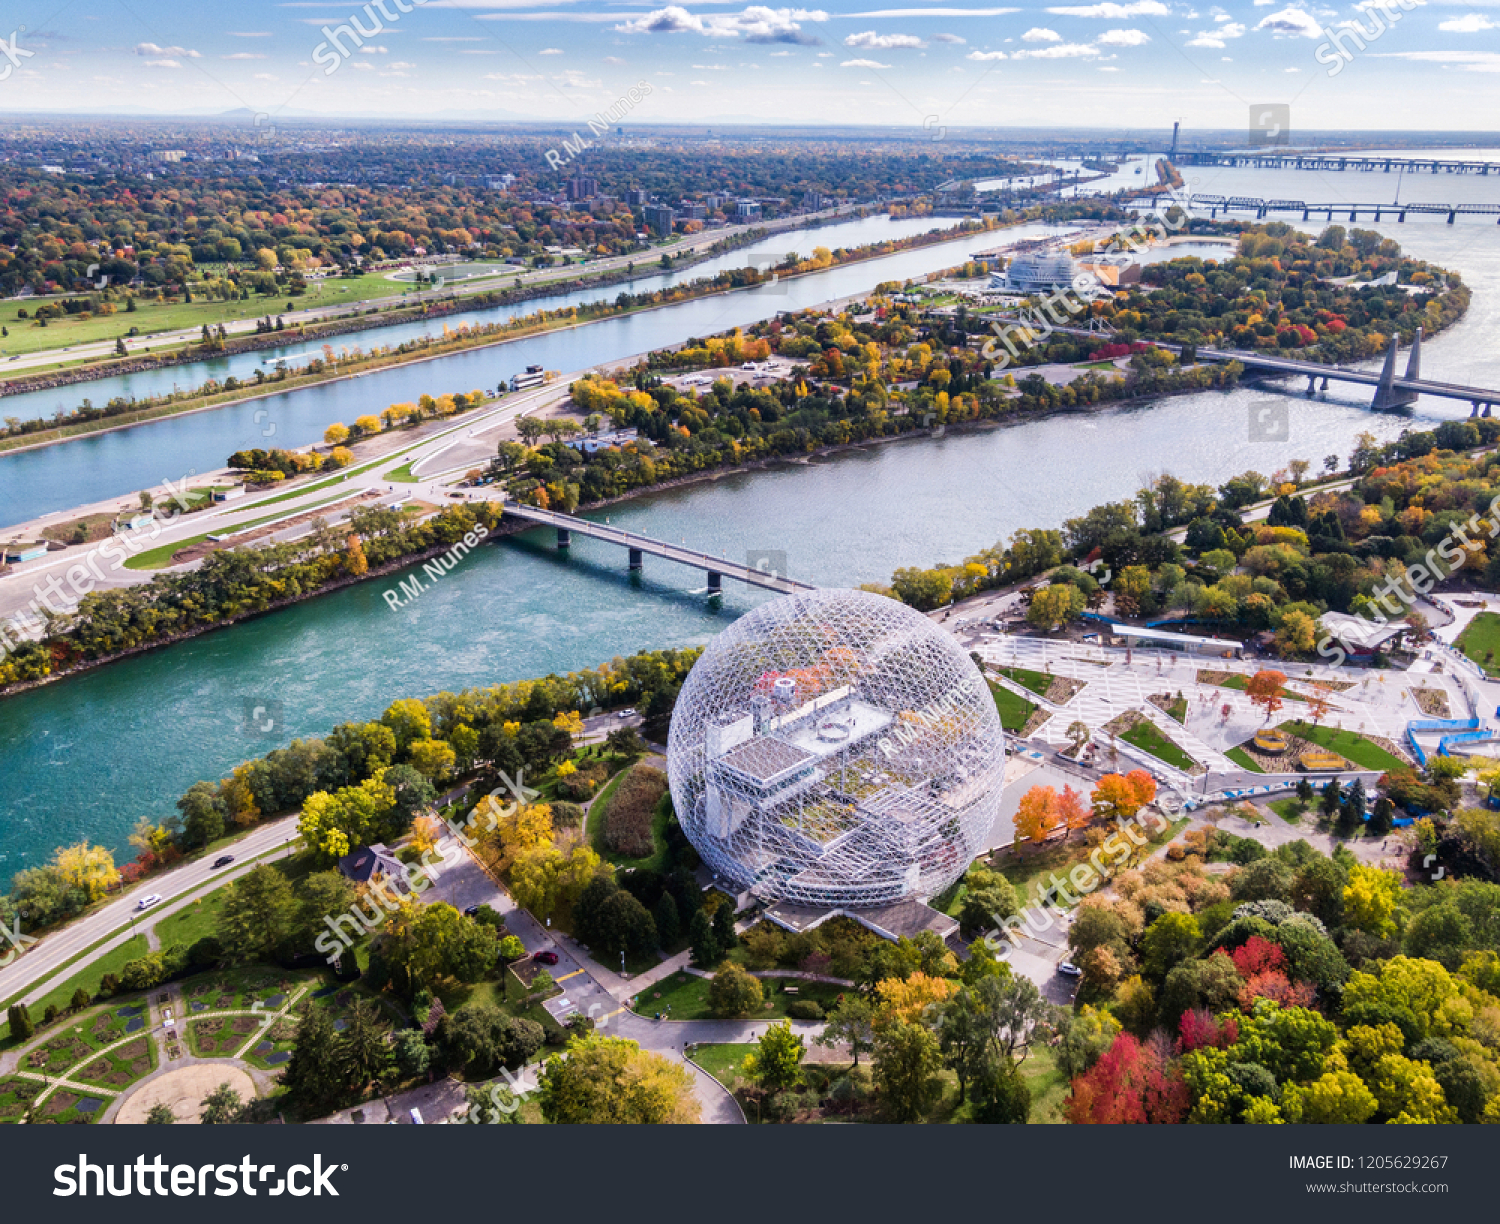 Aerial view of Montreal showing the Biosphere Environment Museum and Saint Lawrence River during Fall season in Quebec, Canada.  #1205629267